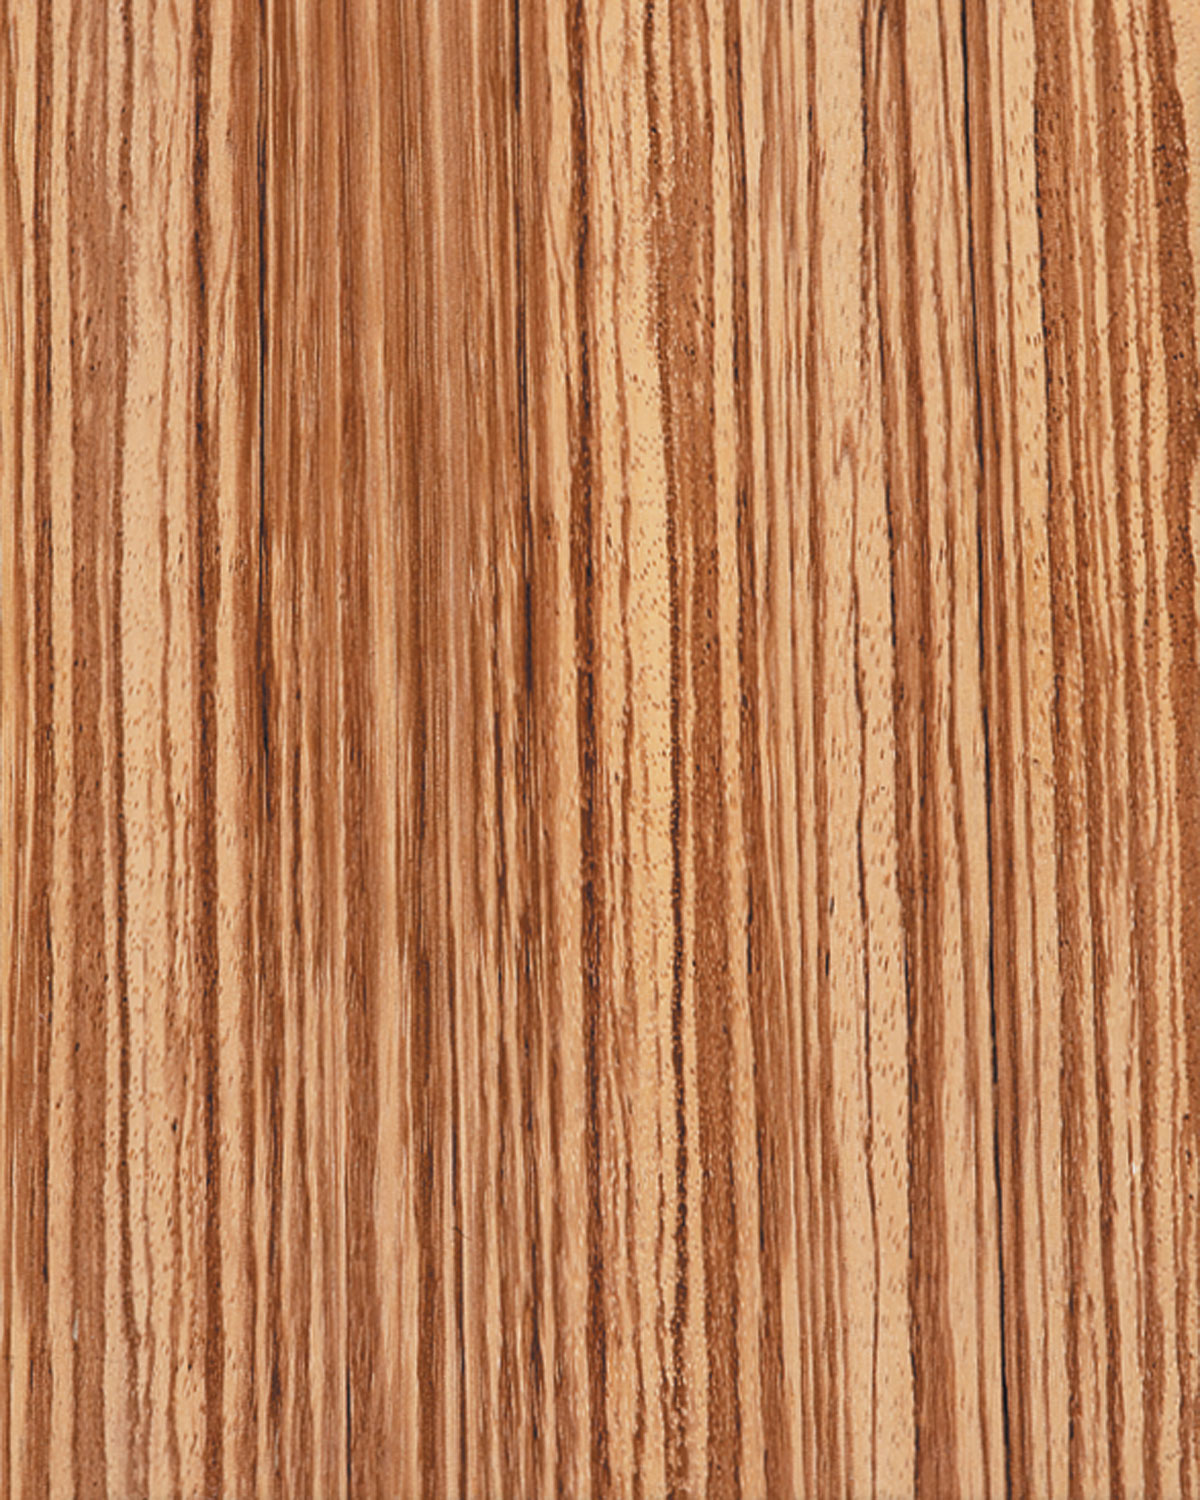 Zebrawood Quarter Cut